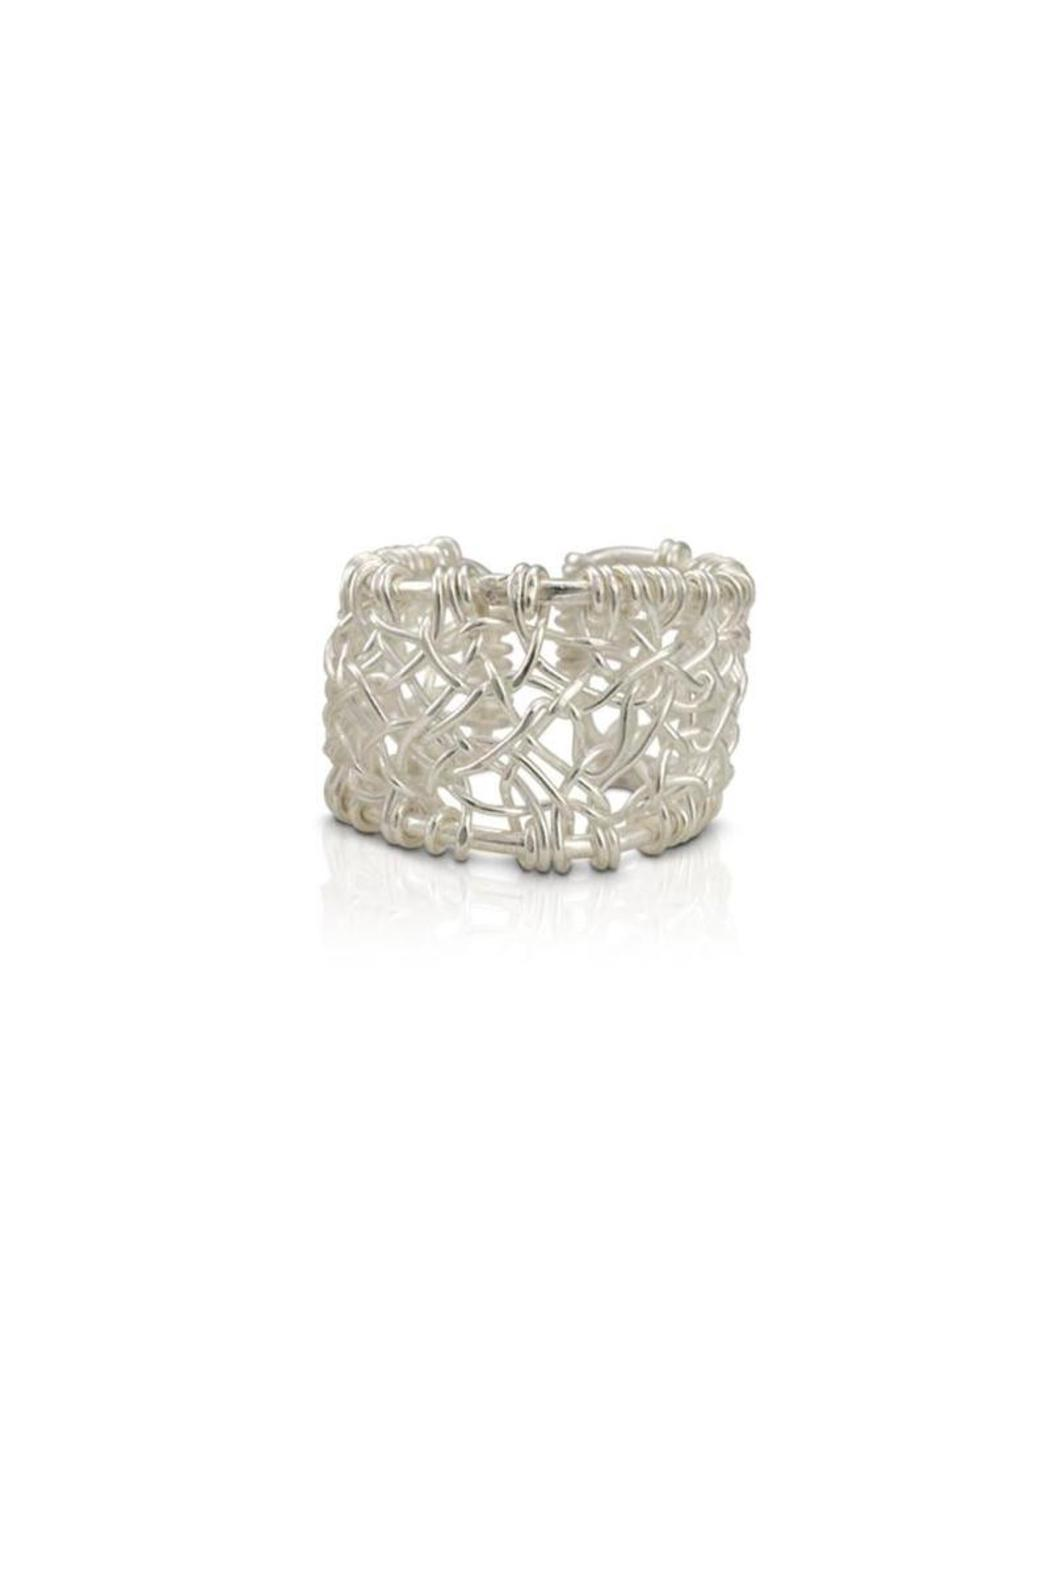 Pavel Perez Wire Woven Ring - Main Image